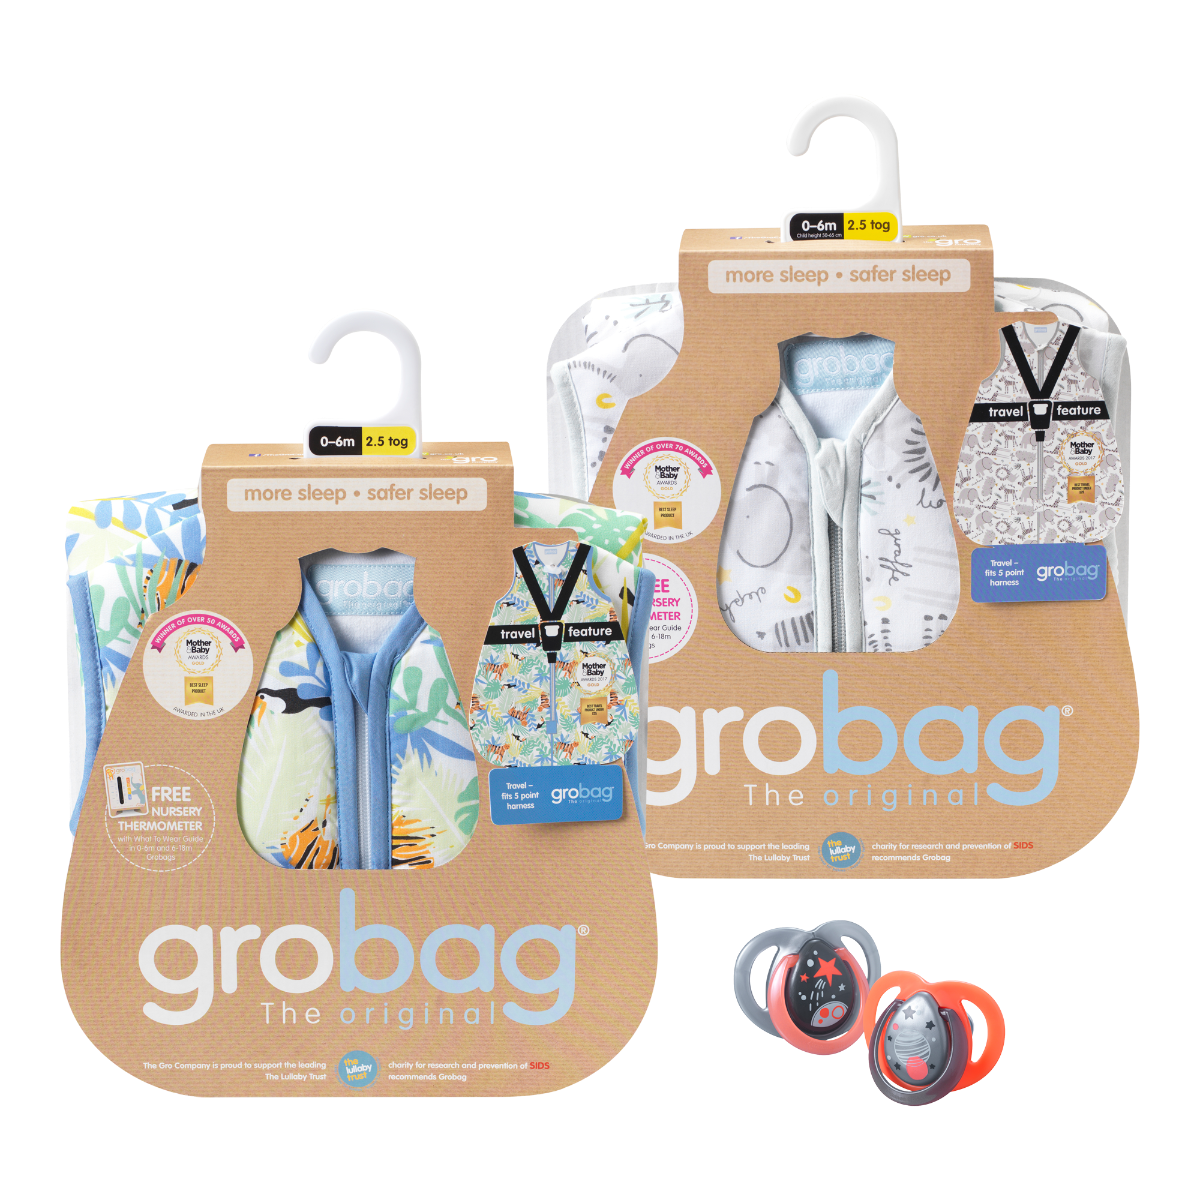 twin-pack-of-grobags-with-night-soothers